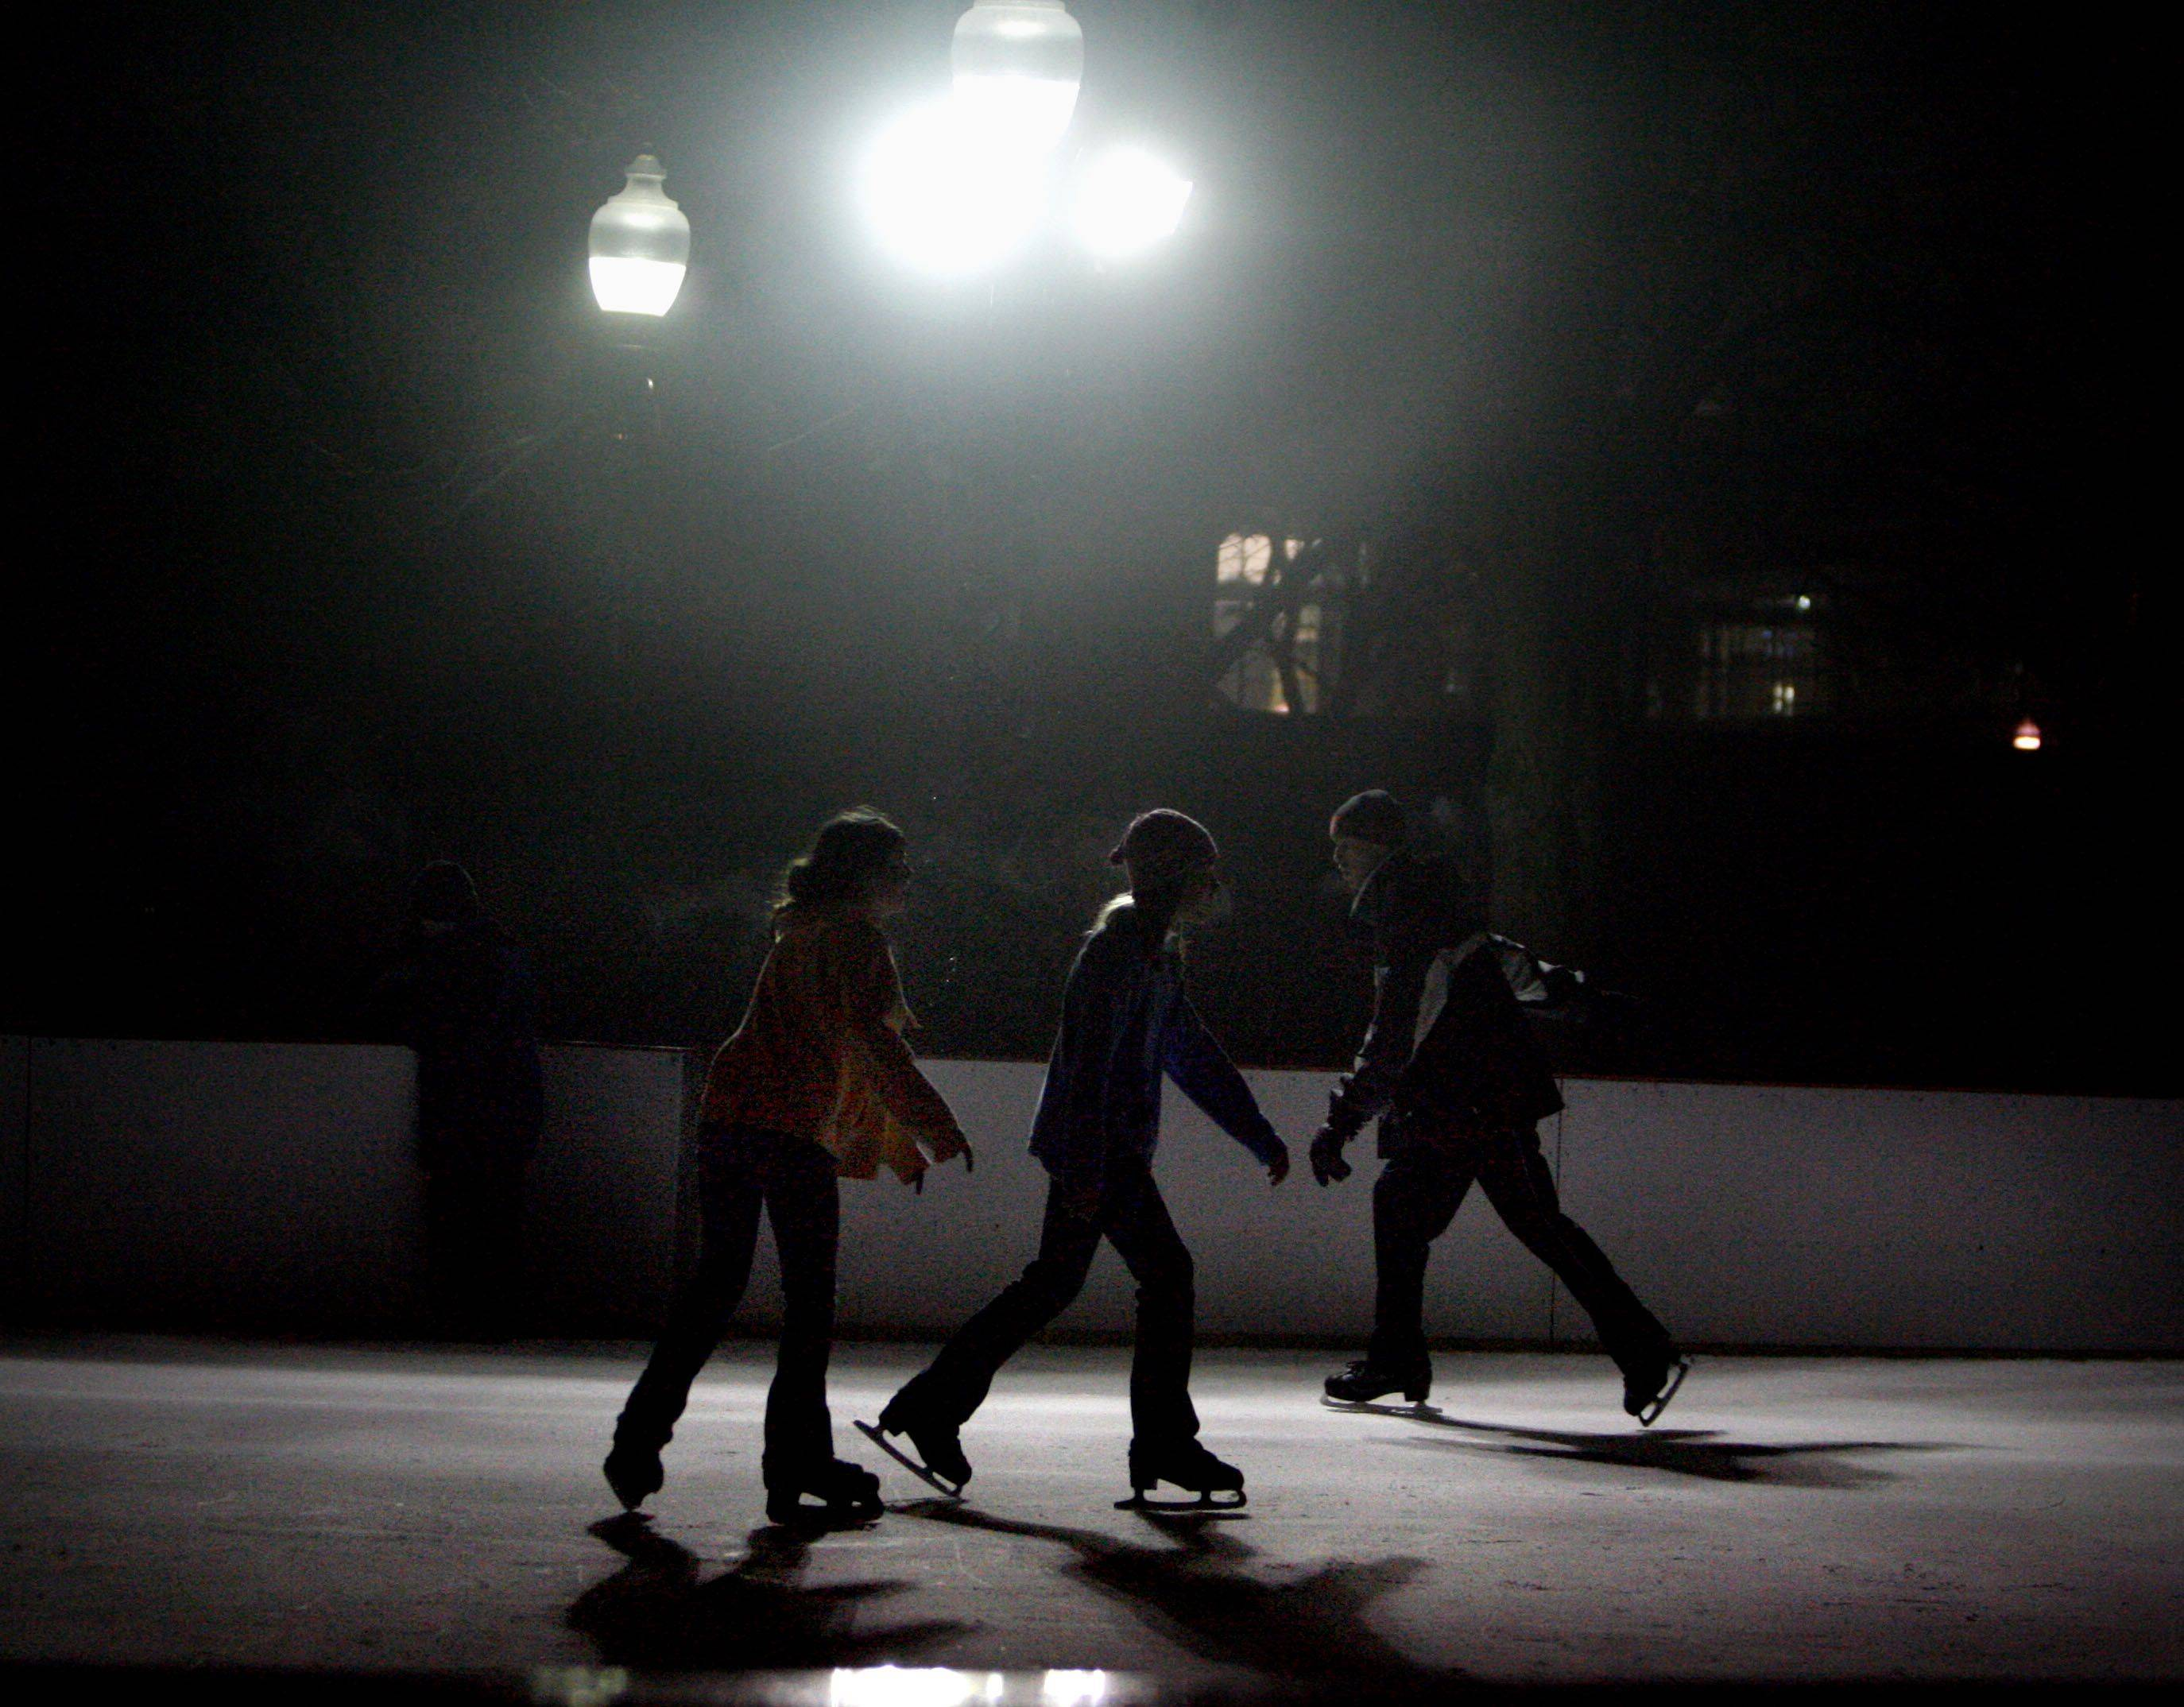 Cold weather means the return of the outdoor rink in Elgin.